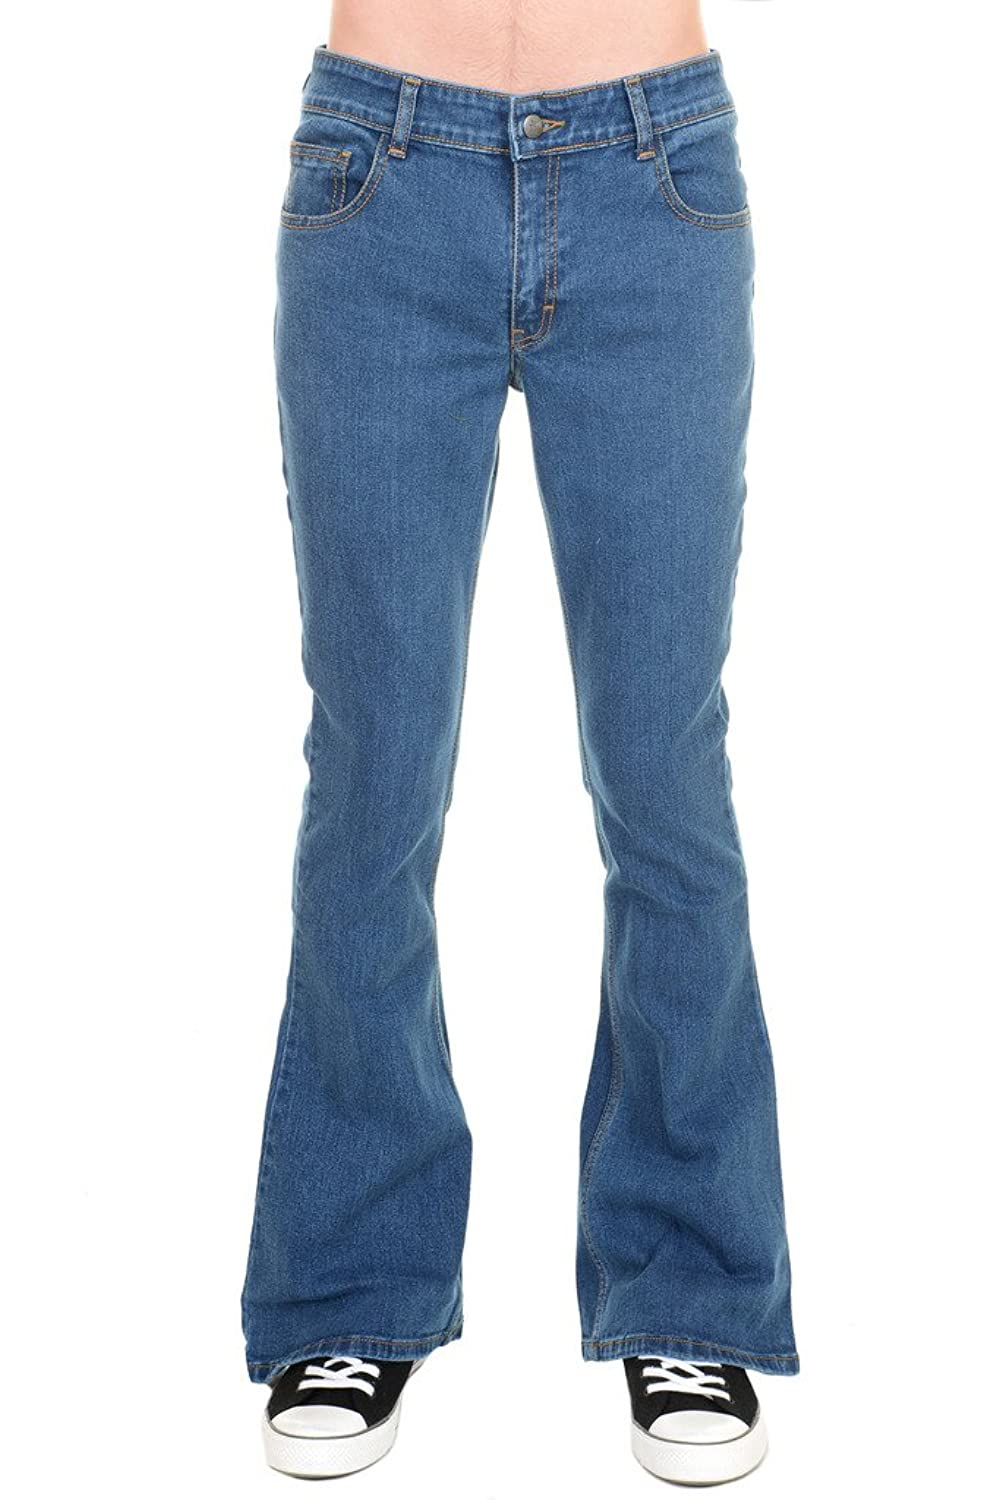 Retro Clothing for Men | Vintage Men's Fashion Run & Fly Stonewash Stretch Denim Bell Bottom Flares $54.95 AT vintagedancer.com